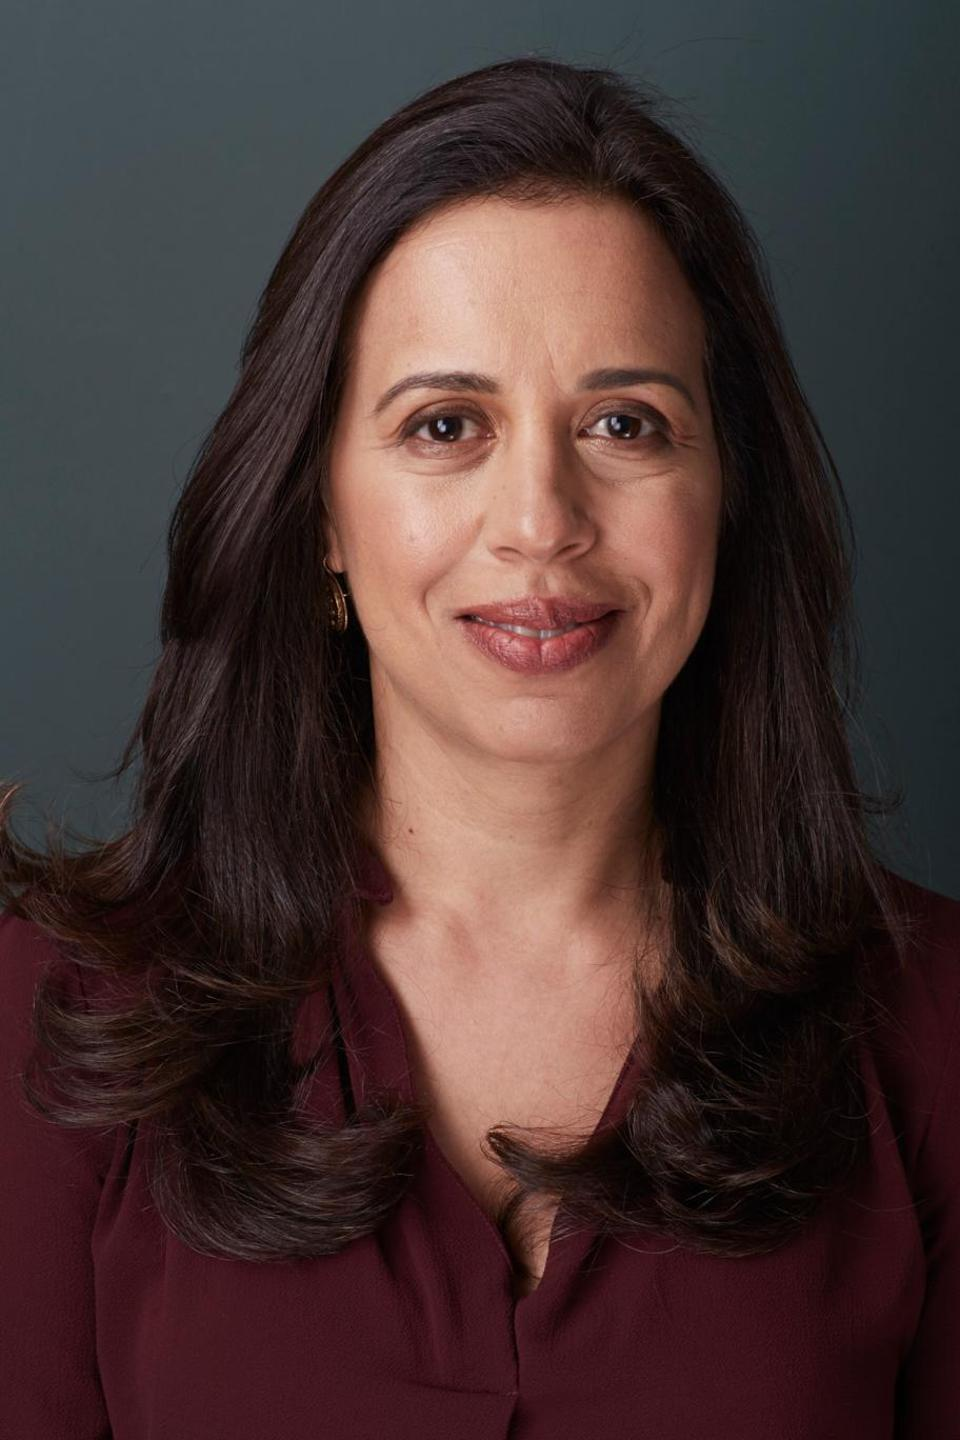 Maha Eltobgy,Head of Shaping the Future of Investing at the World Economic Forum